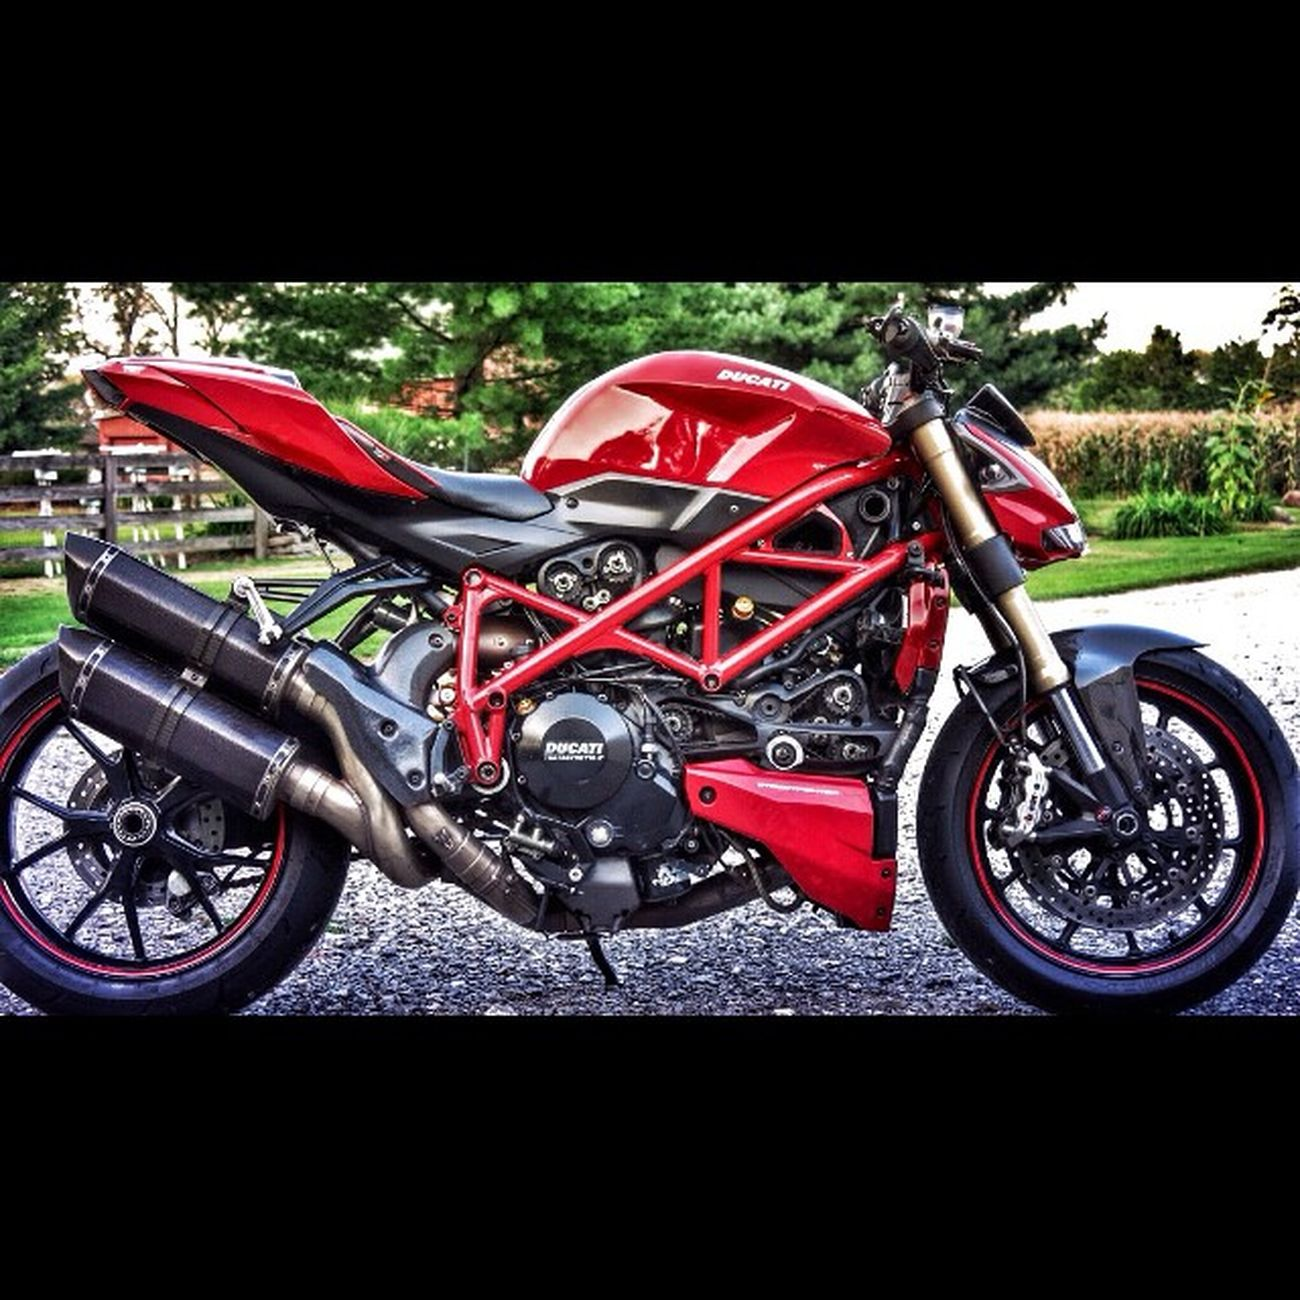 Queen Ducati Ducatistreetfighter Motorcycle Brembo  akrapovic testastretta2 rizoma red cnc belts open compwerkes ohlins sargent cutaway mwr